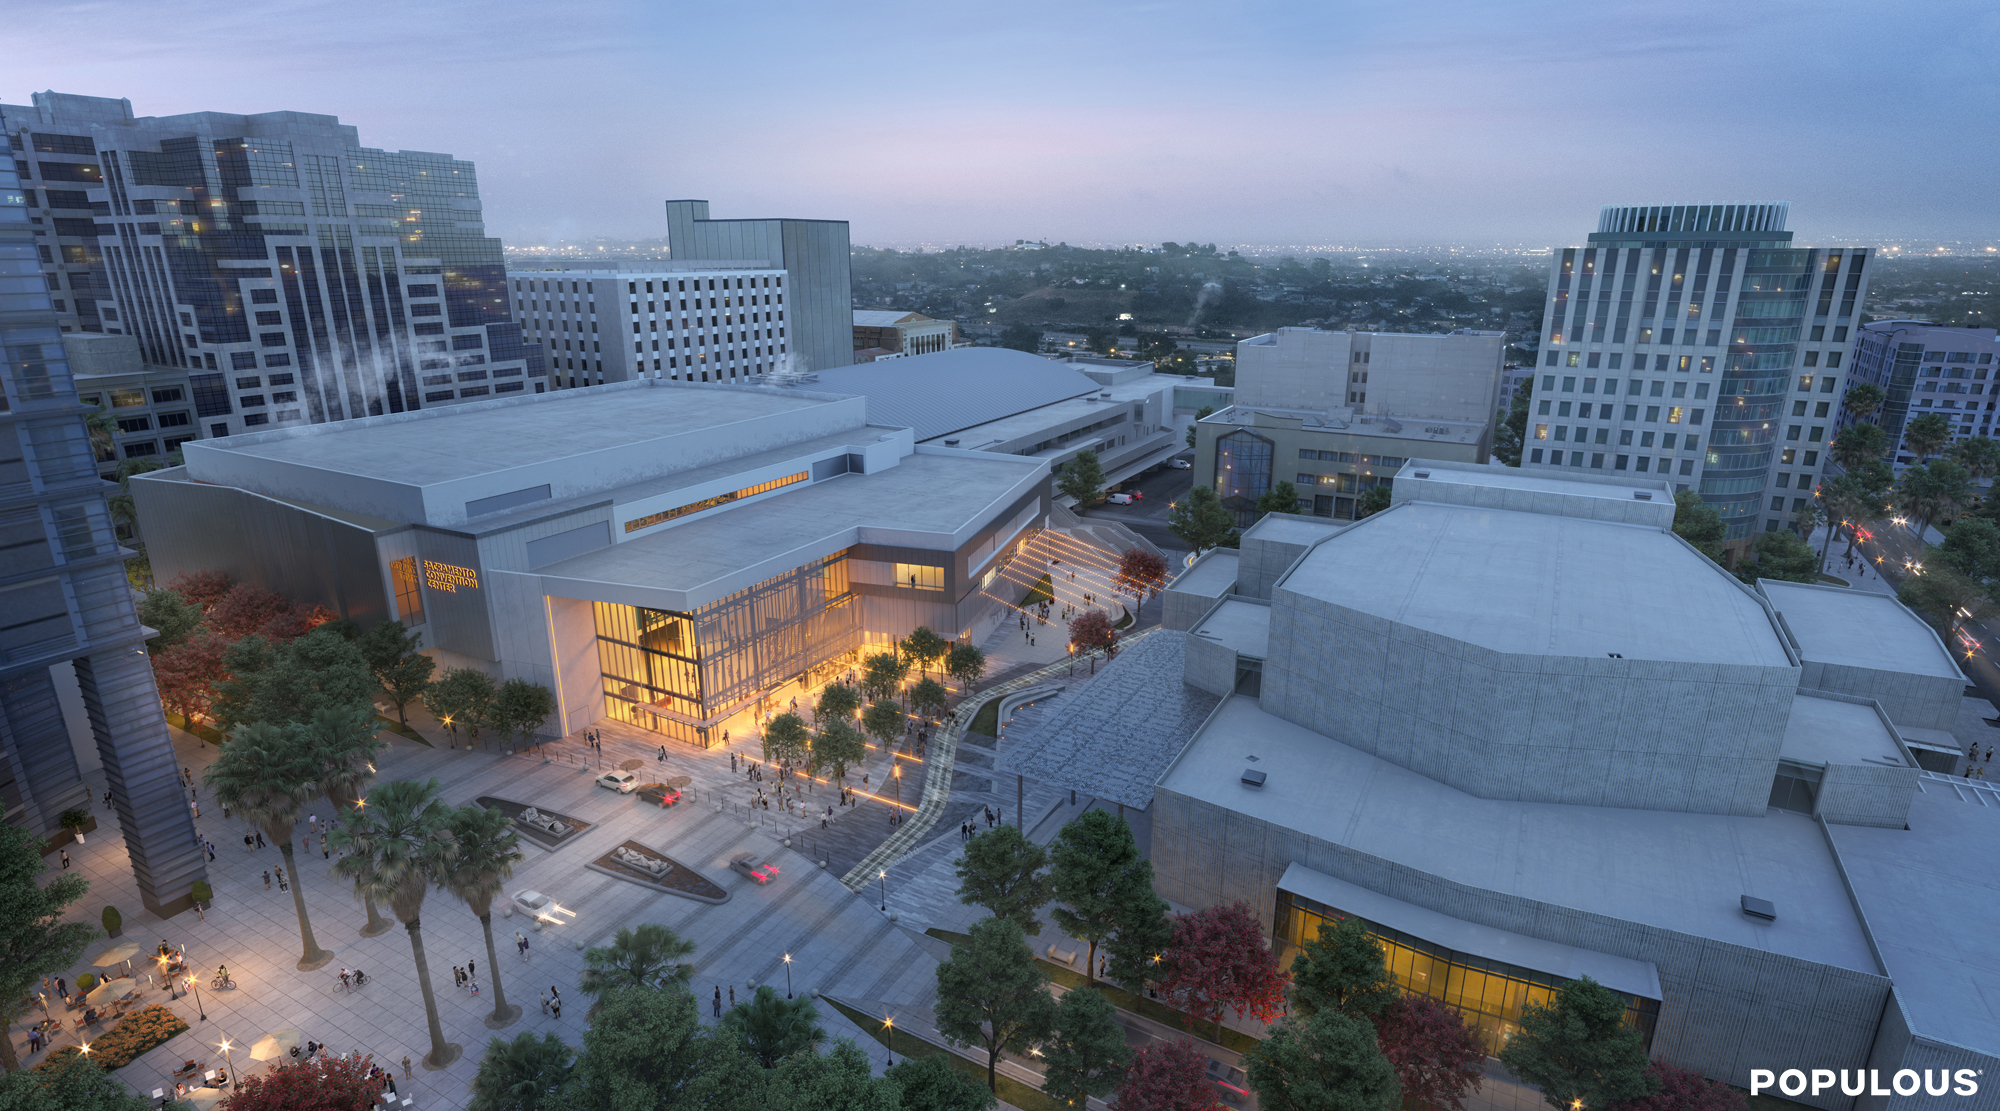 O'Connor awarded the City of Sacramento Convention Center Renovation & Expansion Project